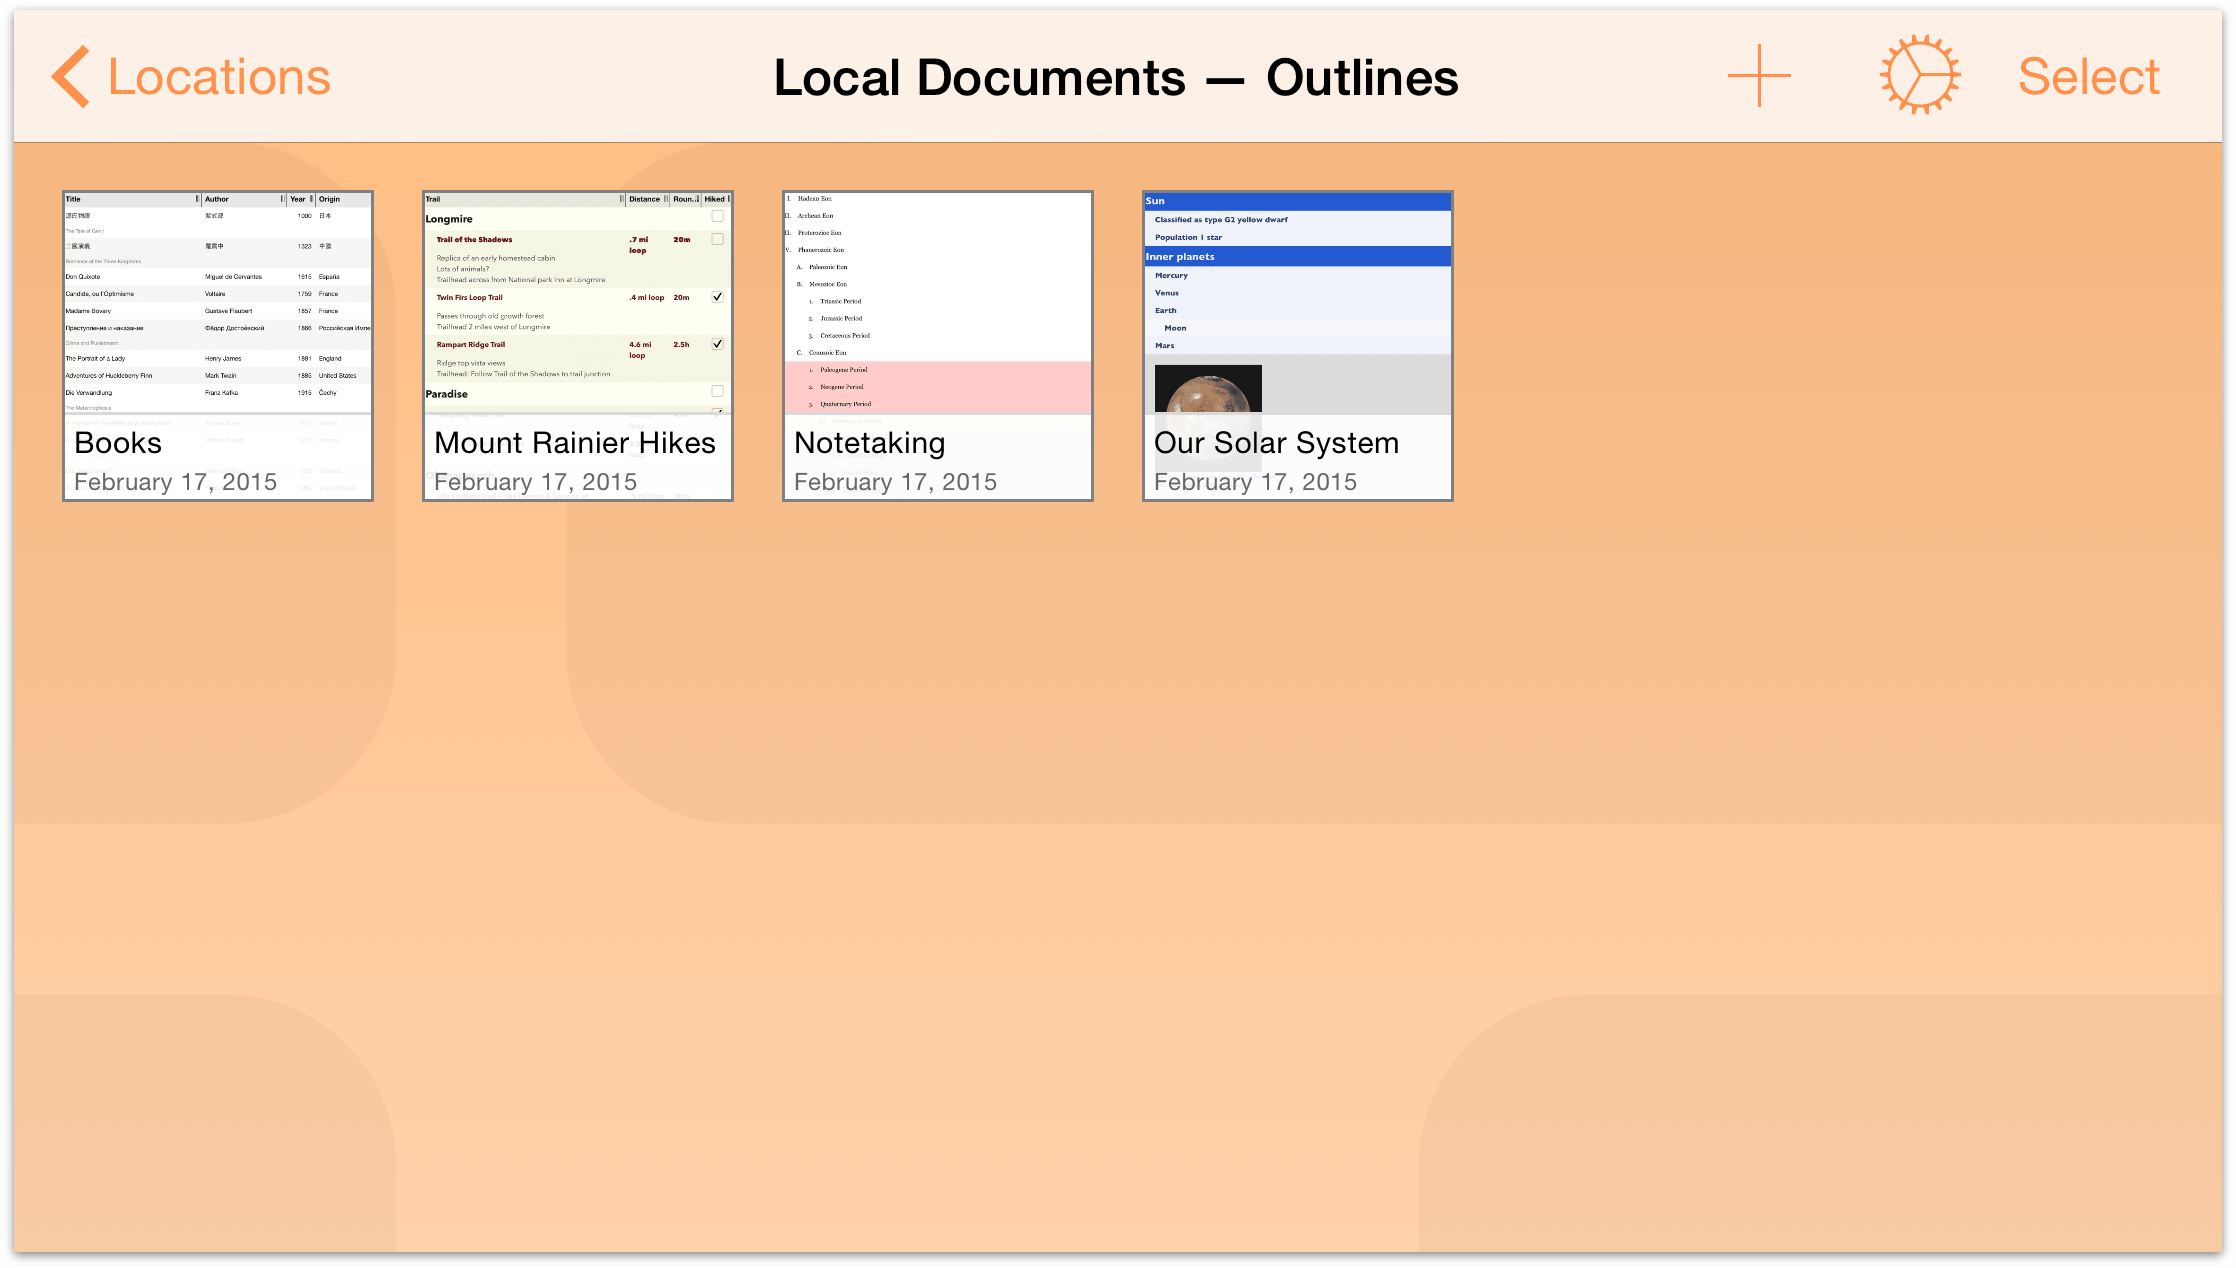 omnioutliner 2 9 6 for ios user manual managing files with the